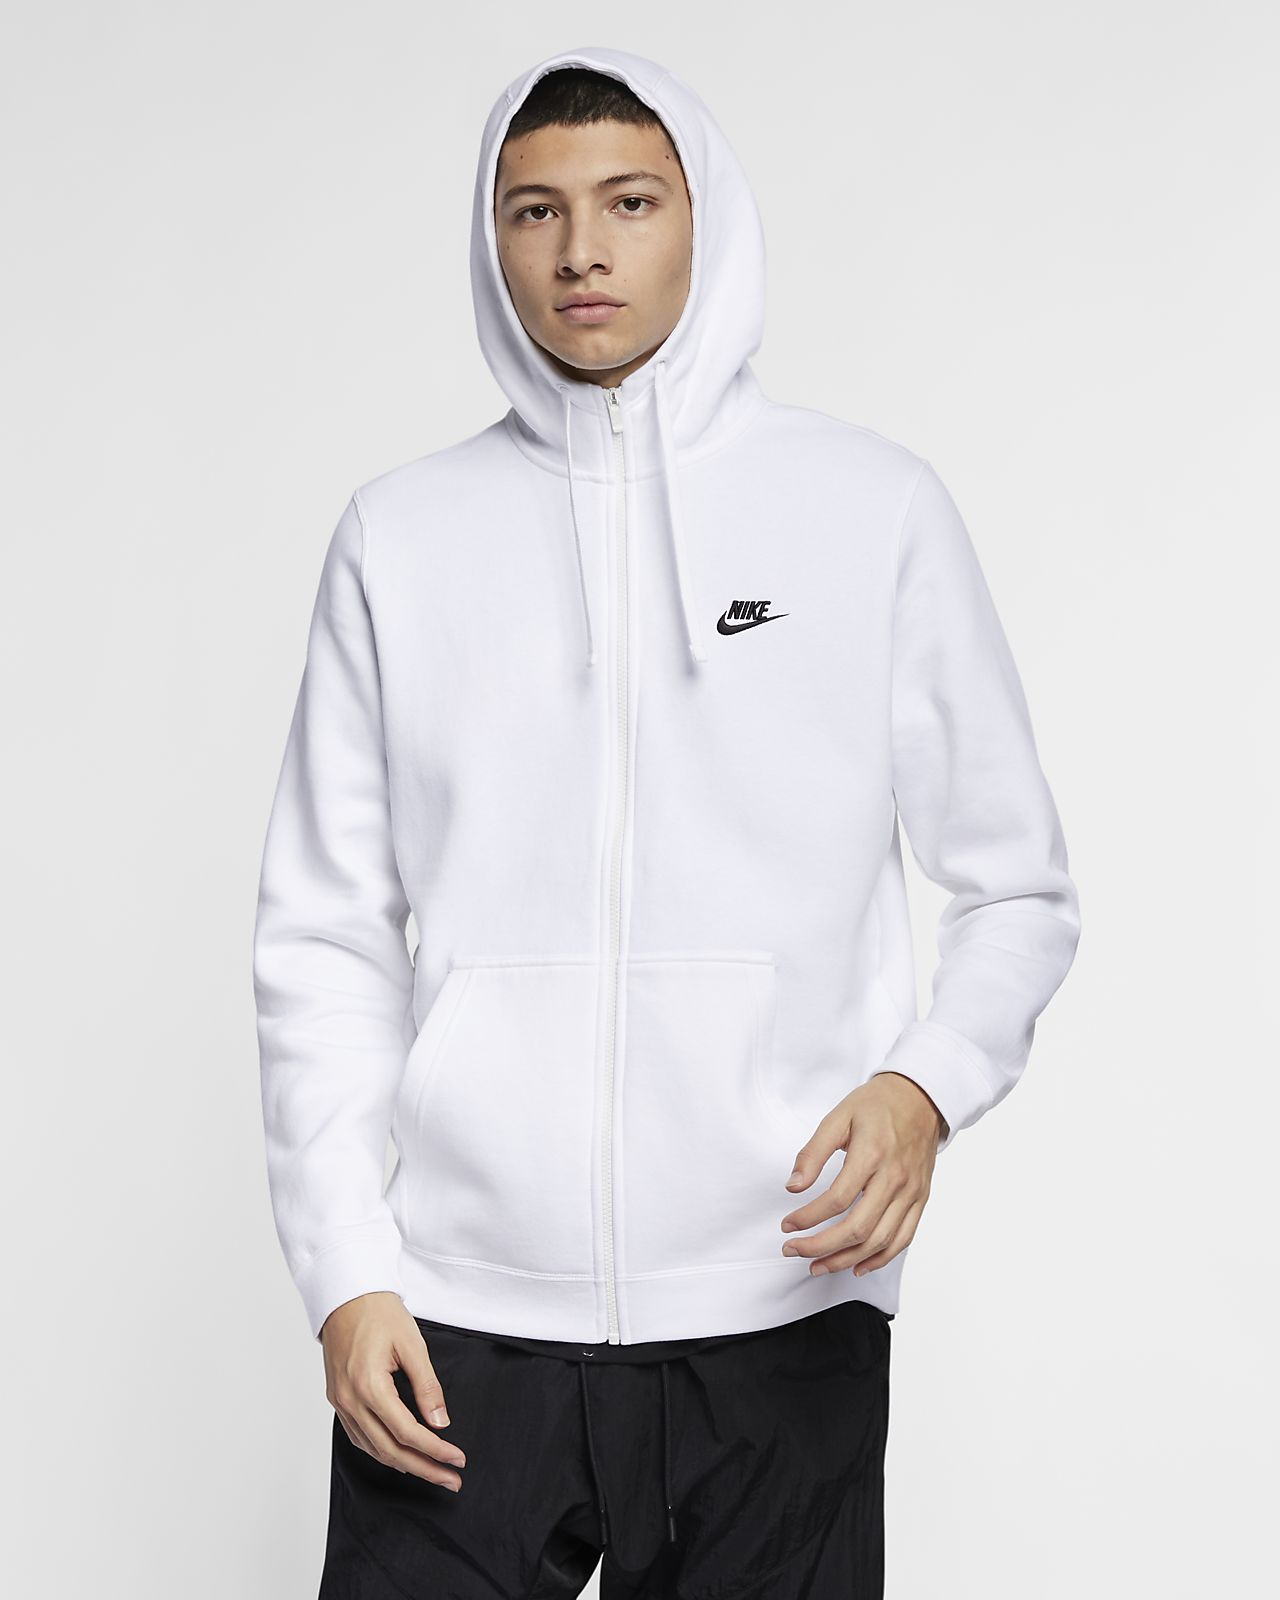 db433062e52a Nike Sportswear Club Fleece Men s Hoodie. Nike.com